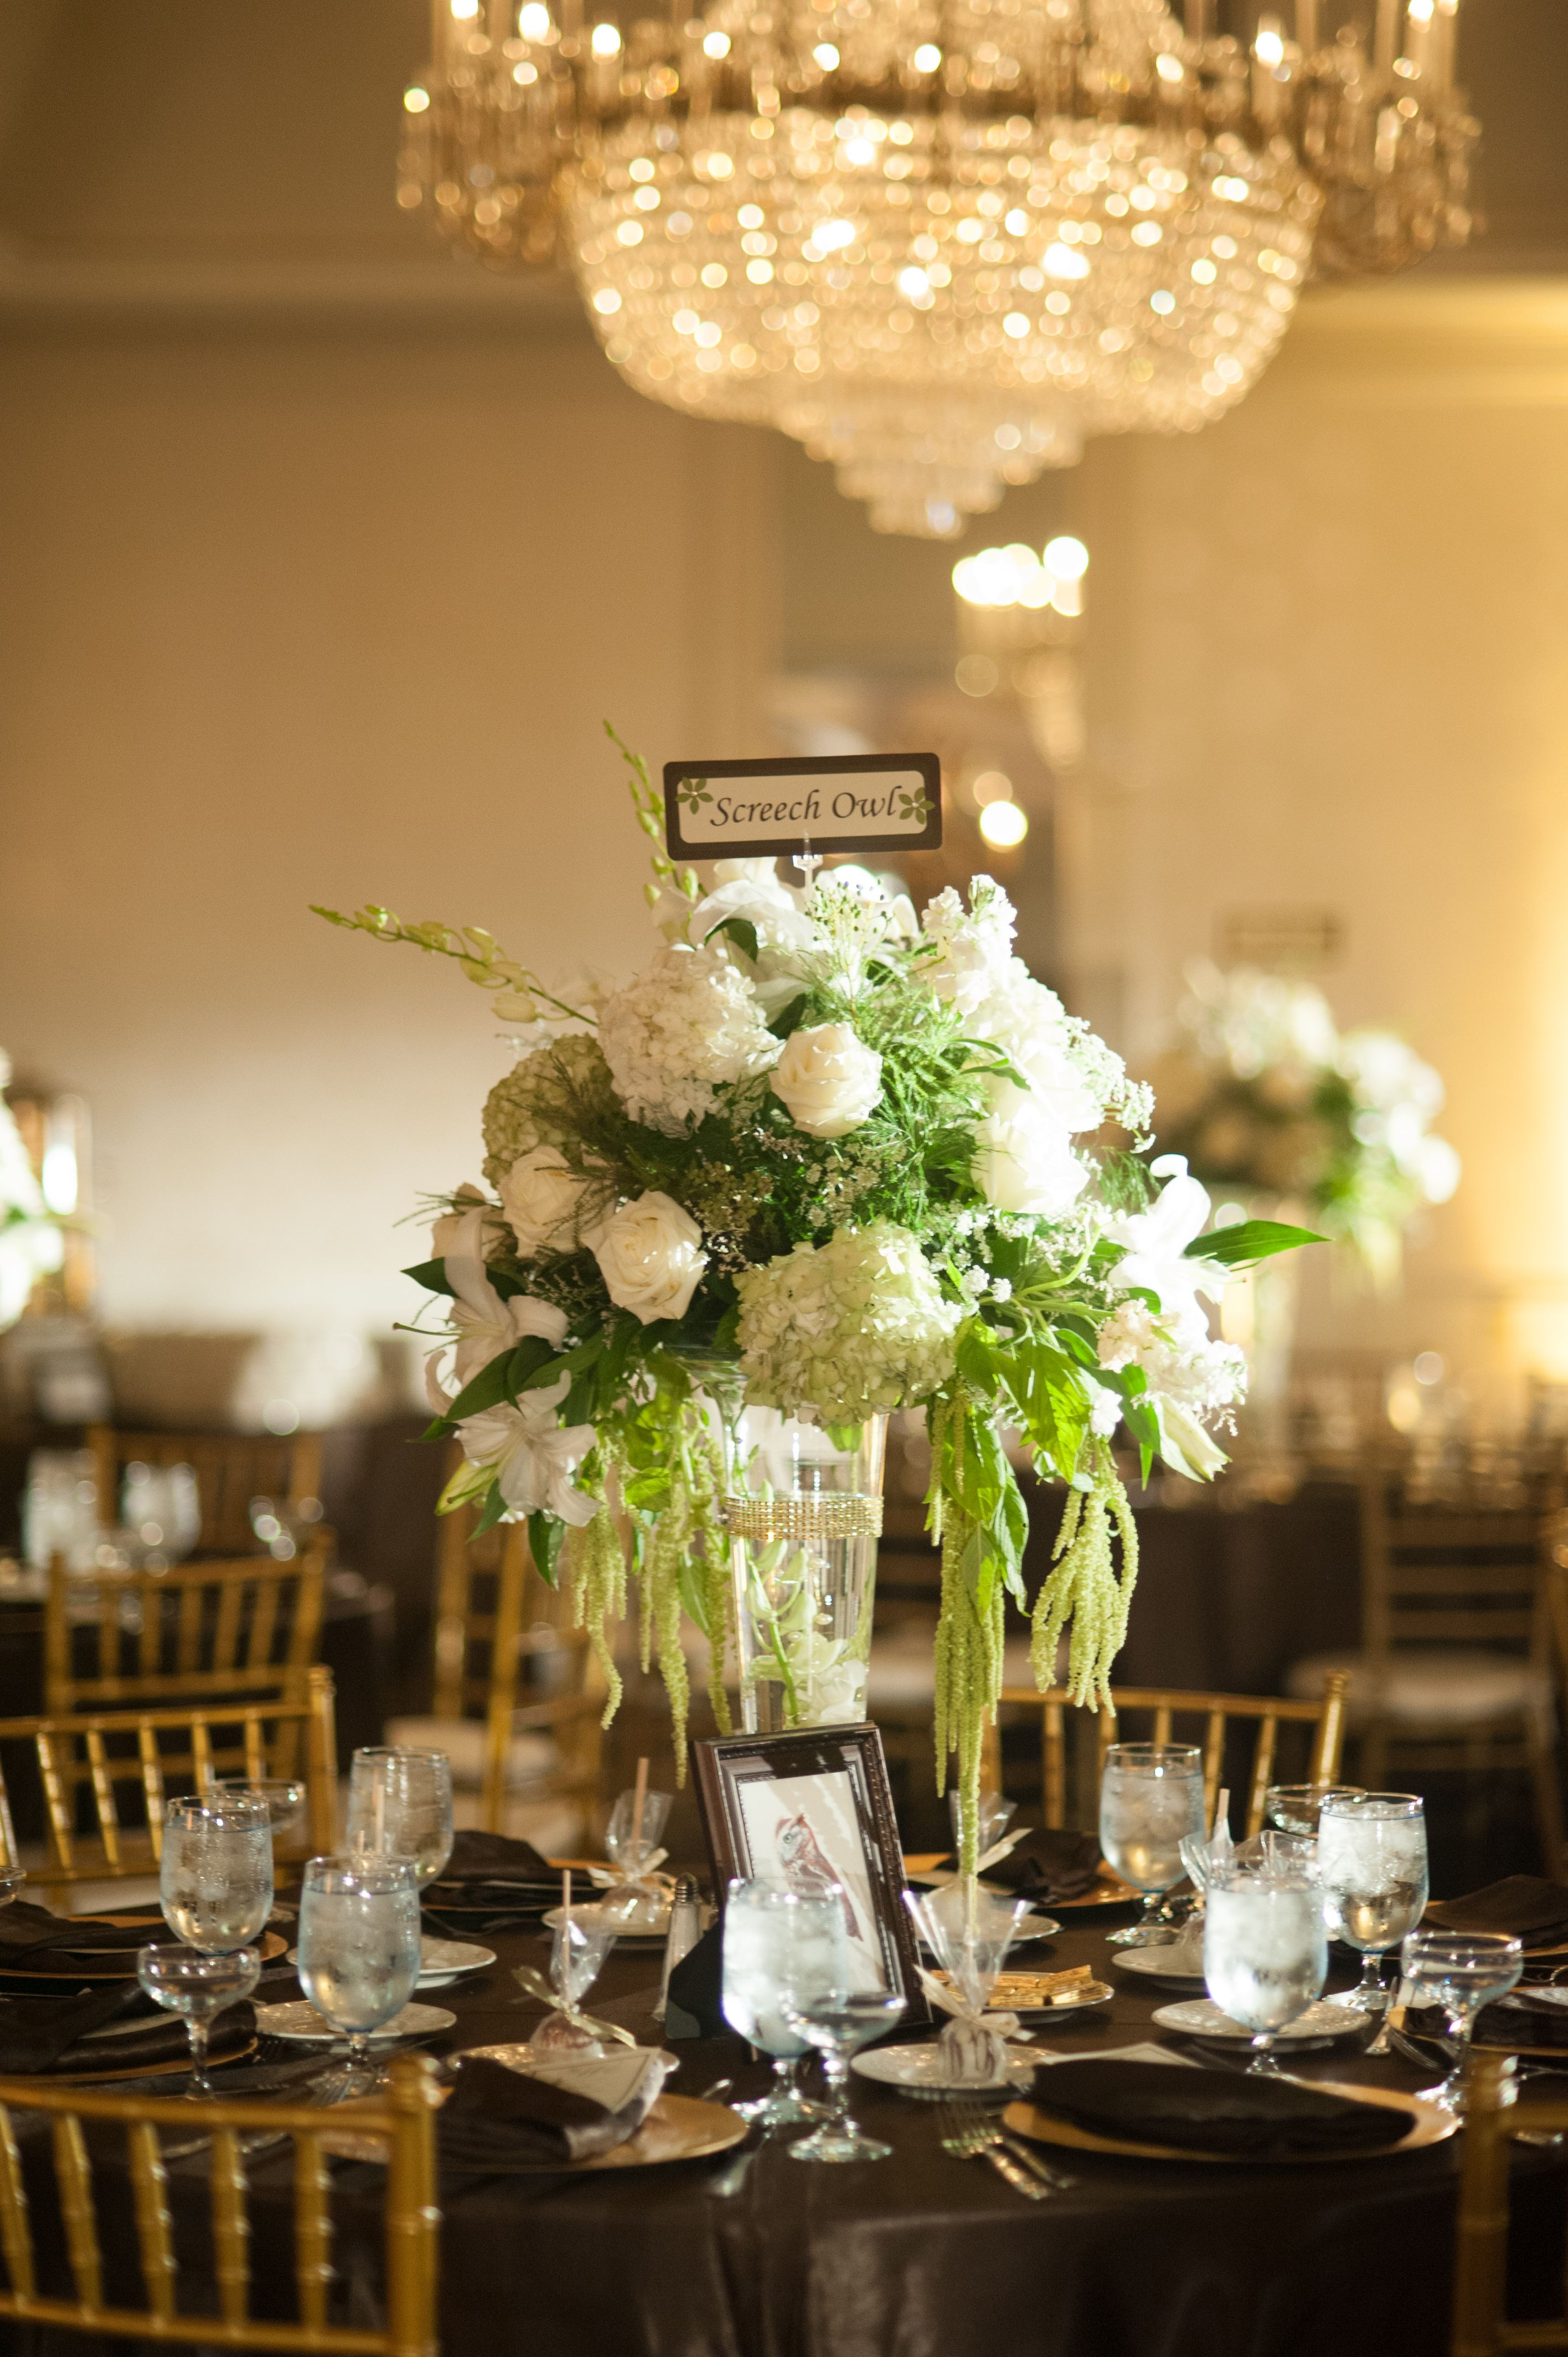 Brown and green tall wedding centerpieces photographer niall brown and green tall wedding centerpieces photographer niall mccarthy niallmccarthy junglespirit Choice Image